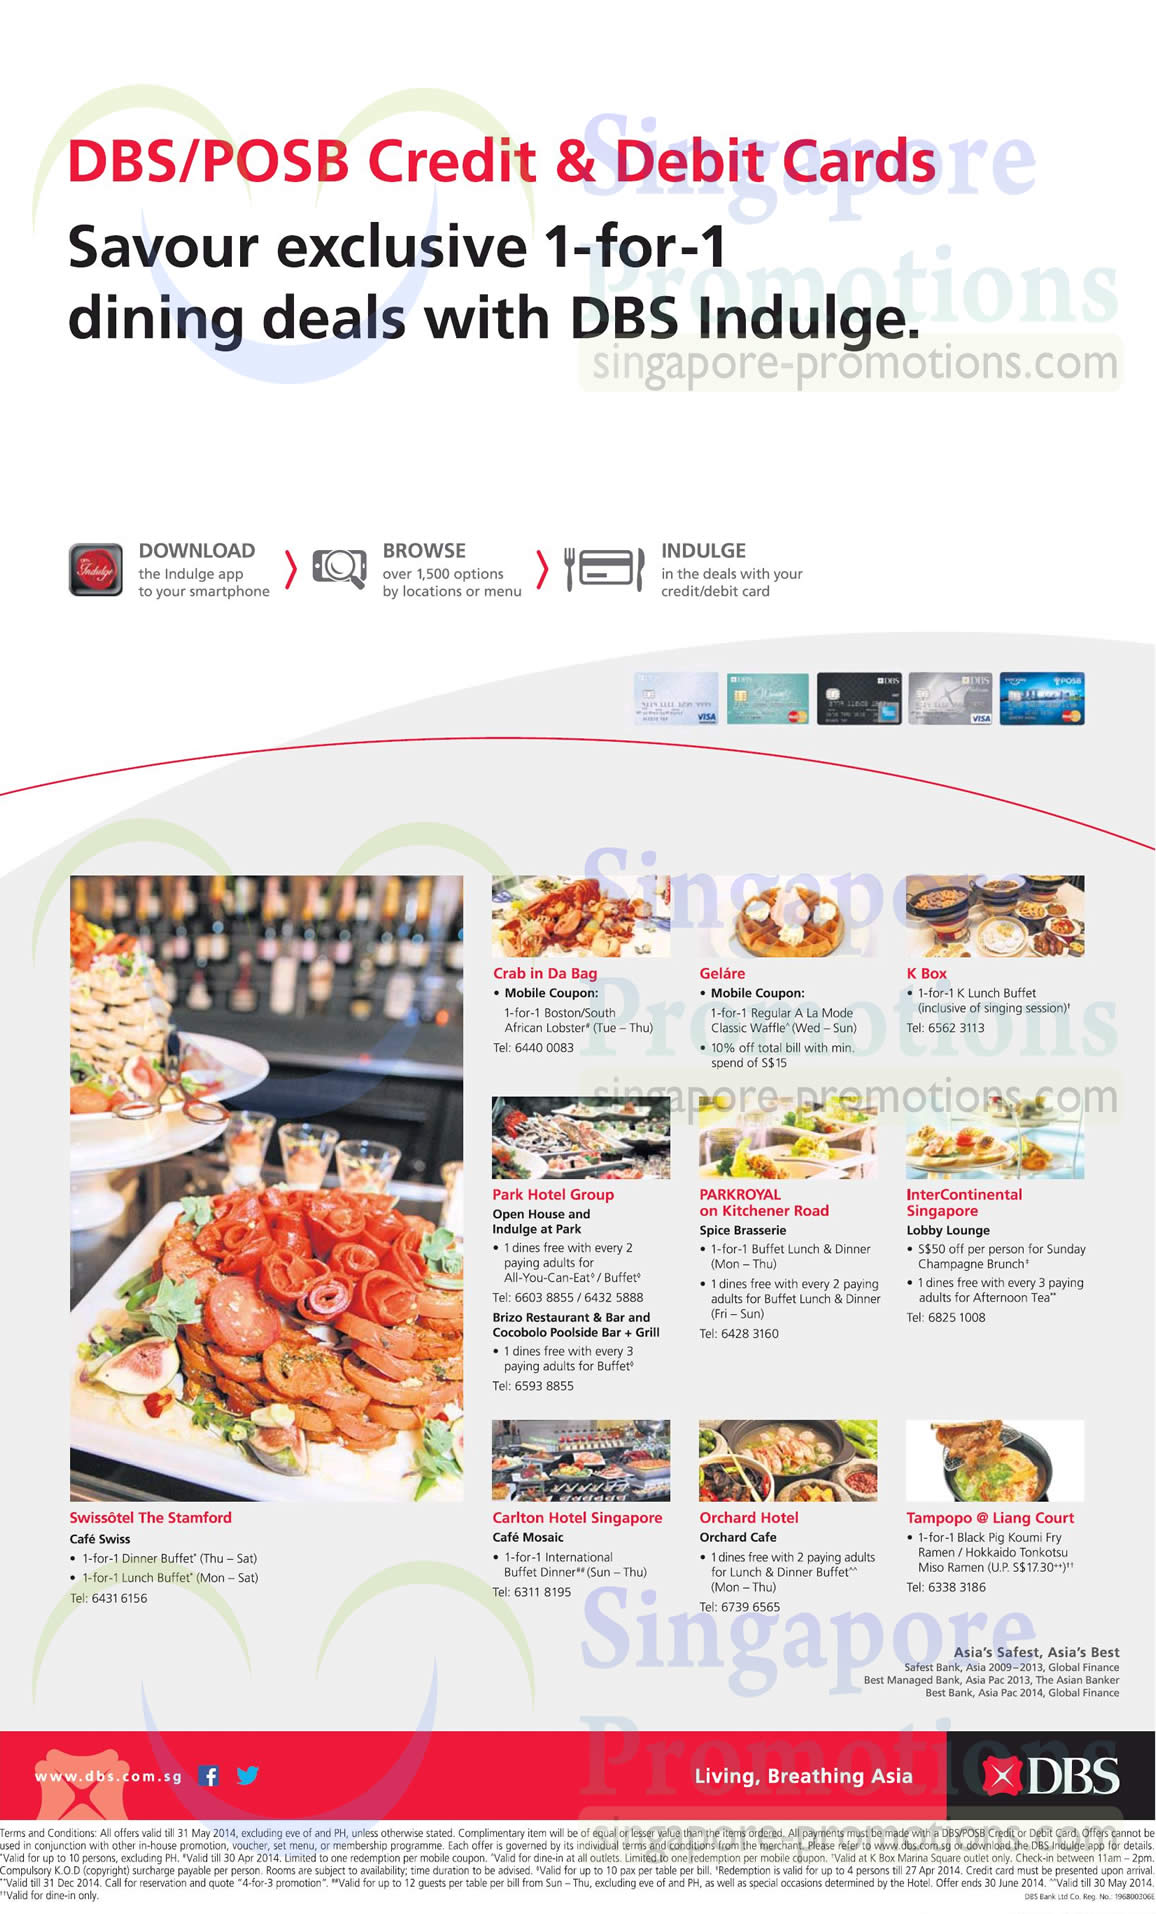 DBS 1 for 1 Dining Deals 3 Apr 2014